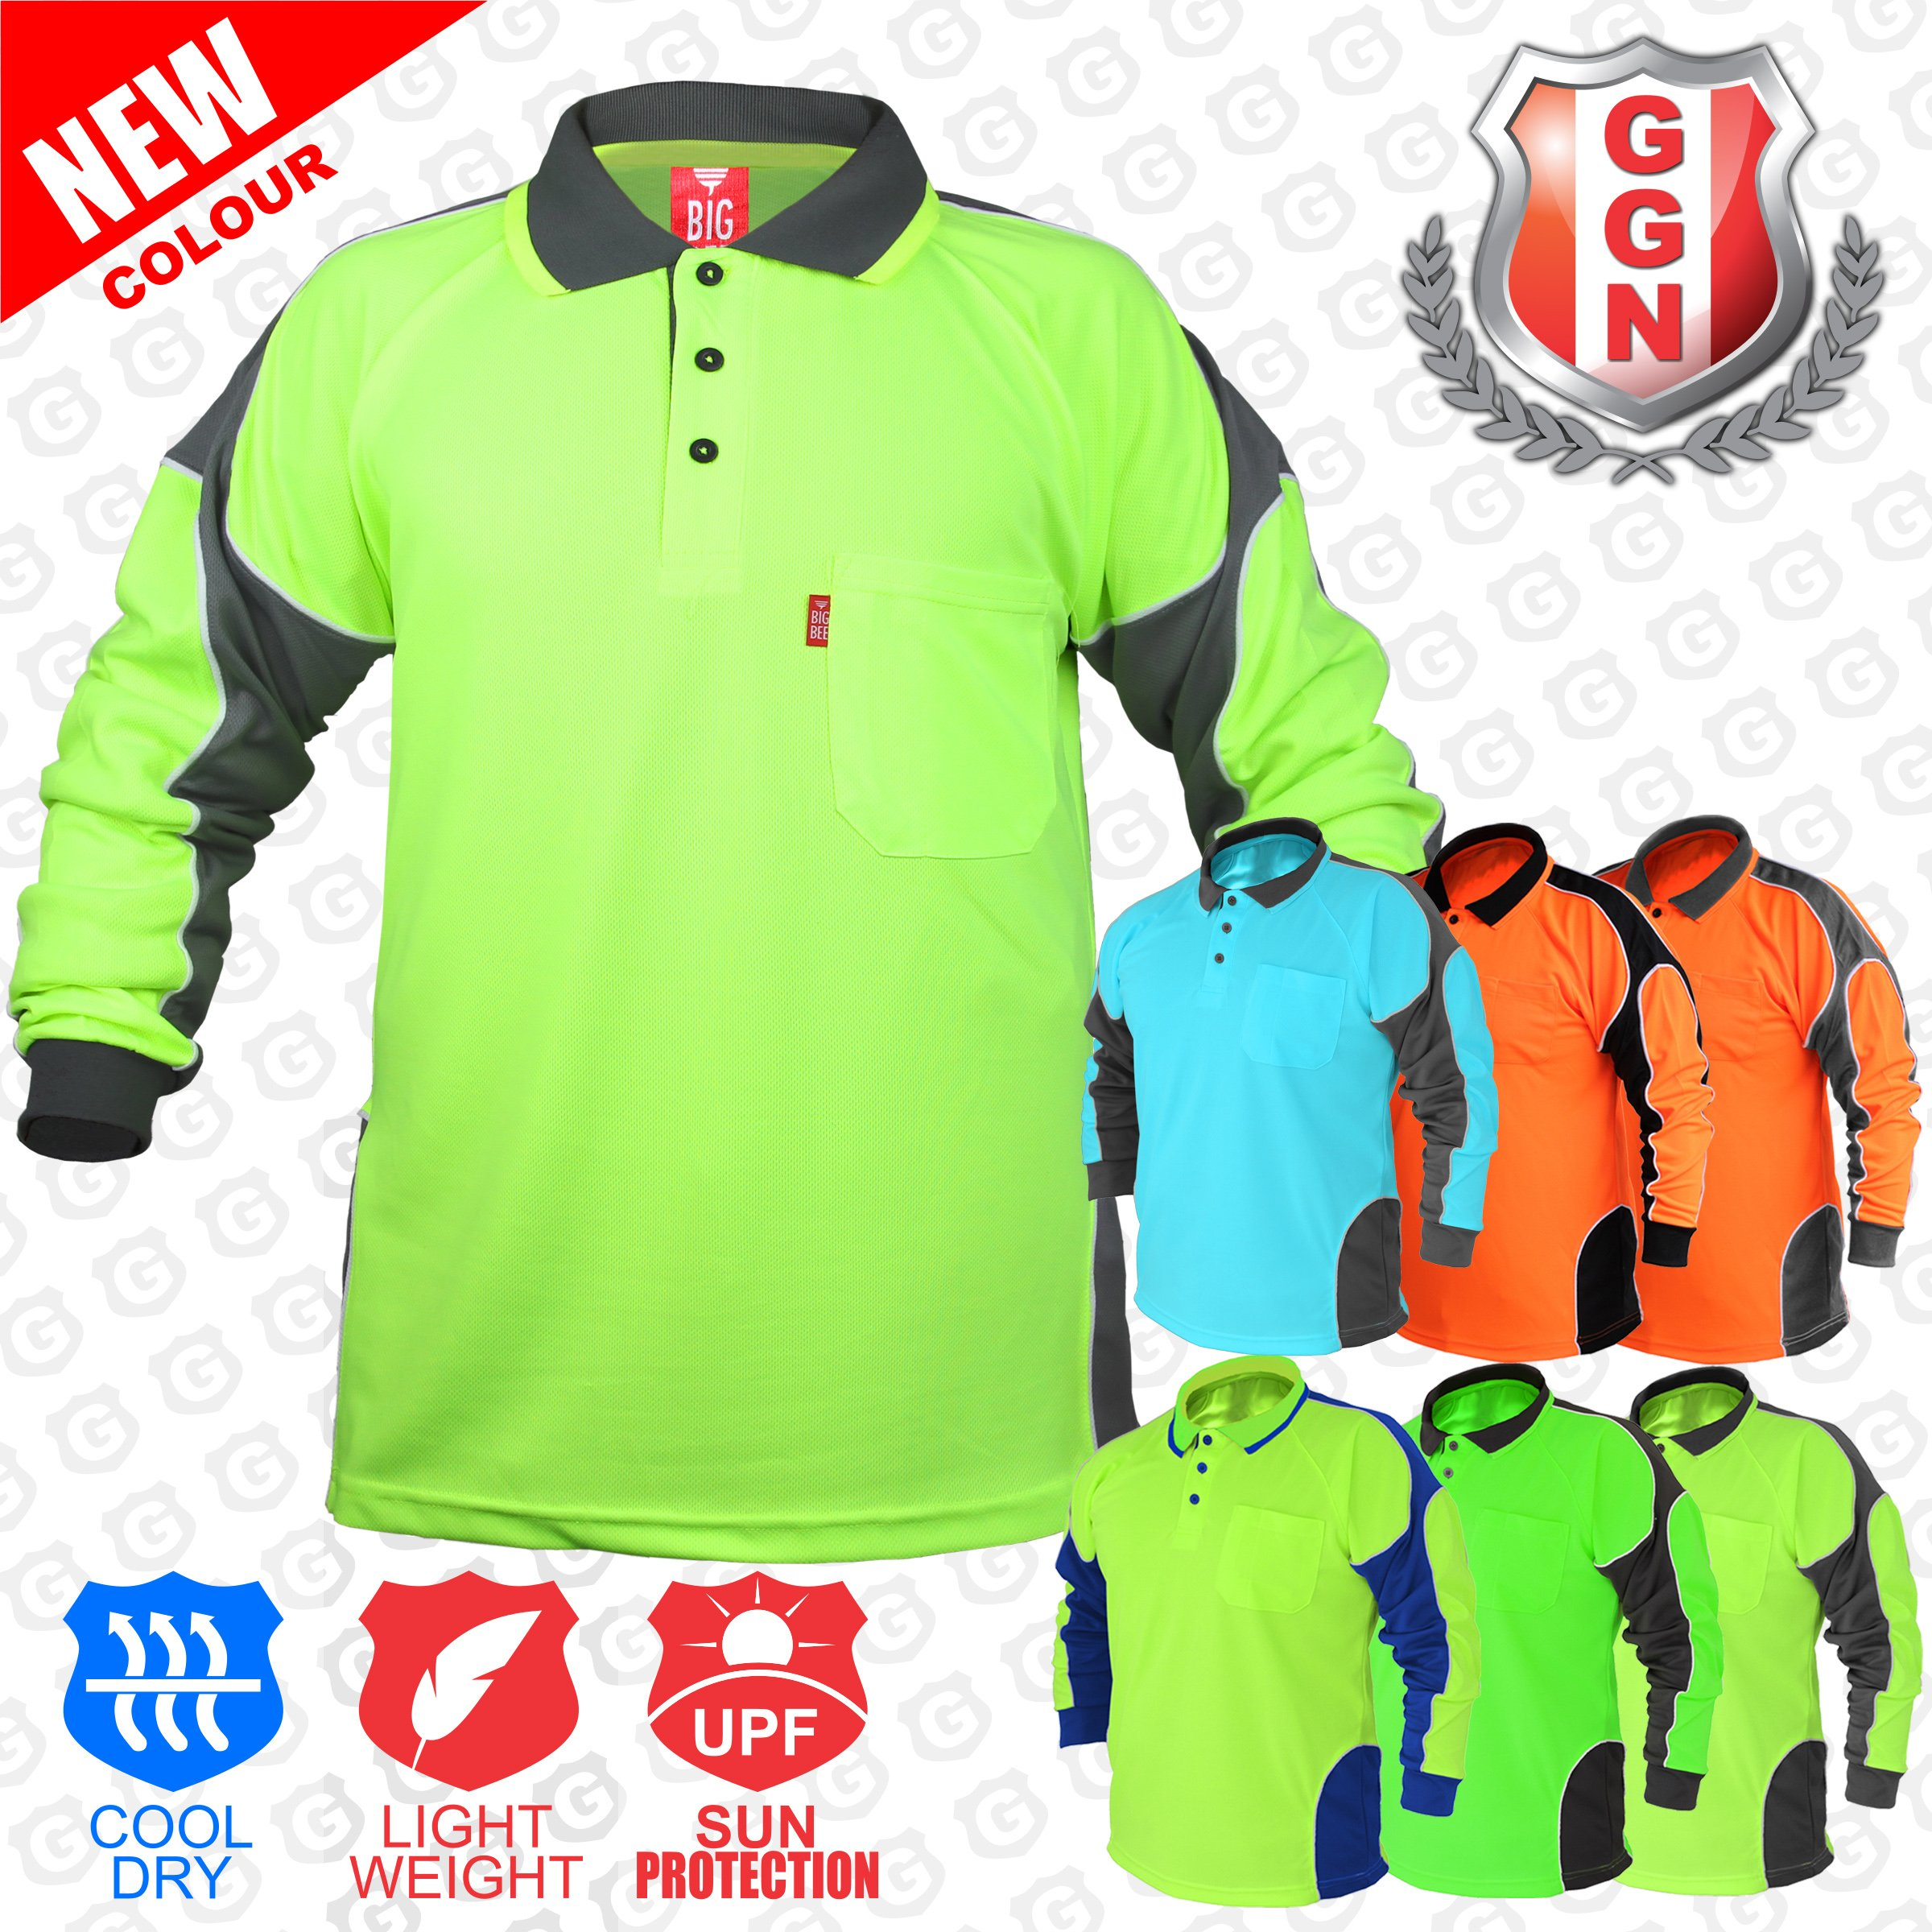 2Pack Hi Vis Polo Shirt Arm Panel With Piing Fluoro Work wear Cool Dry Long Sleeve by BIG BEE (Image #4)